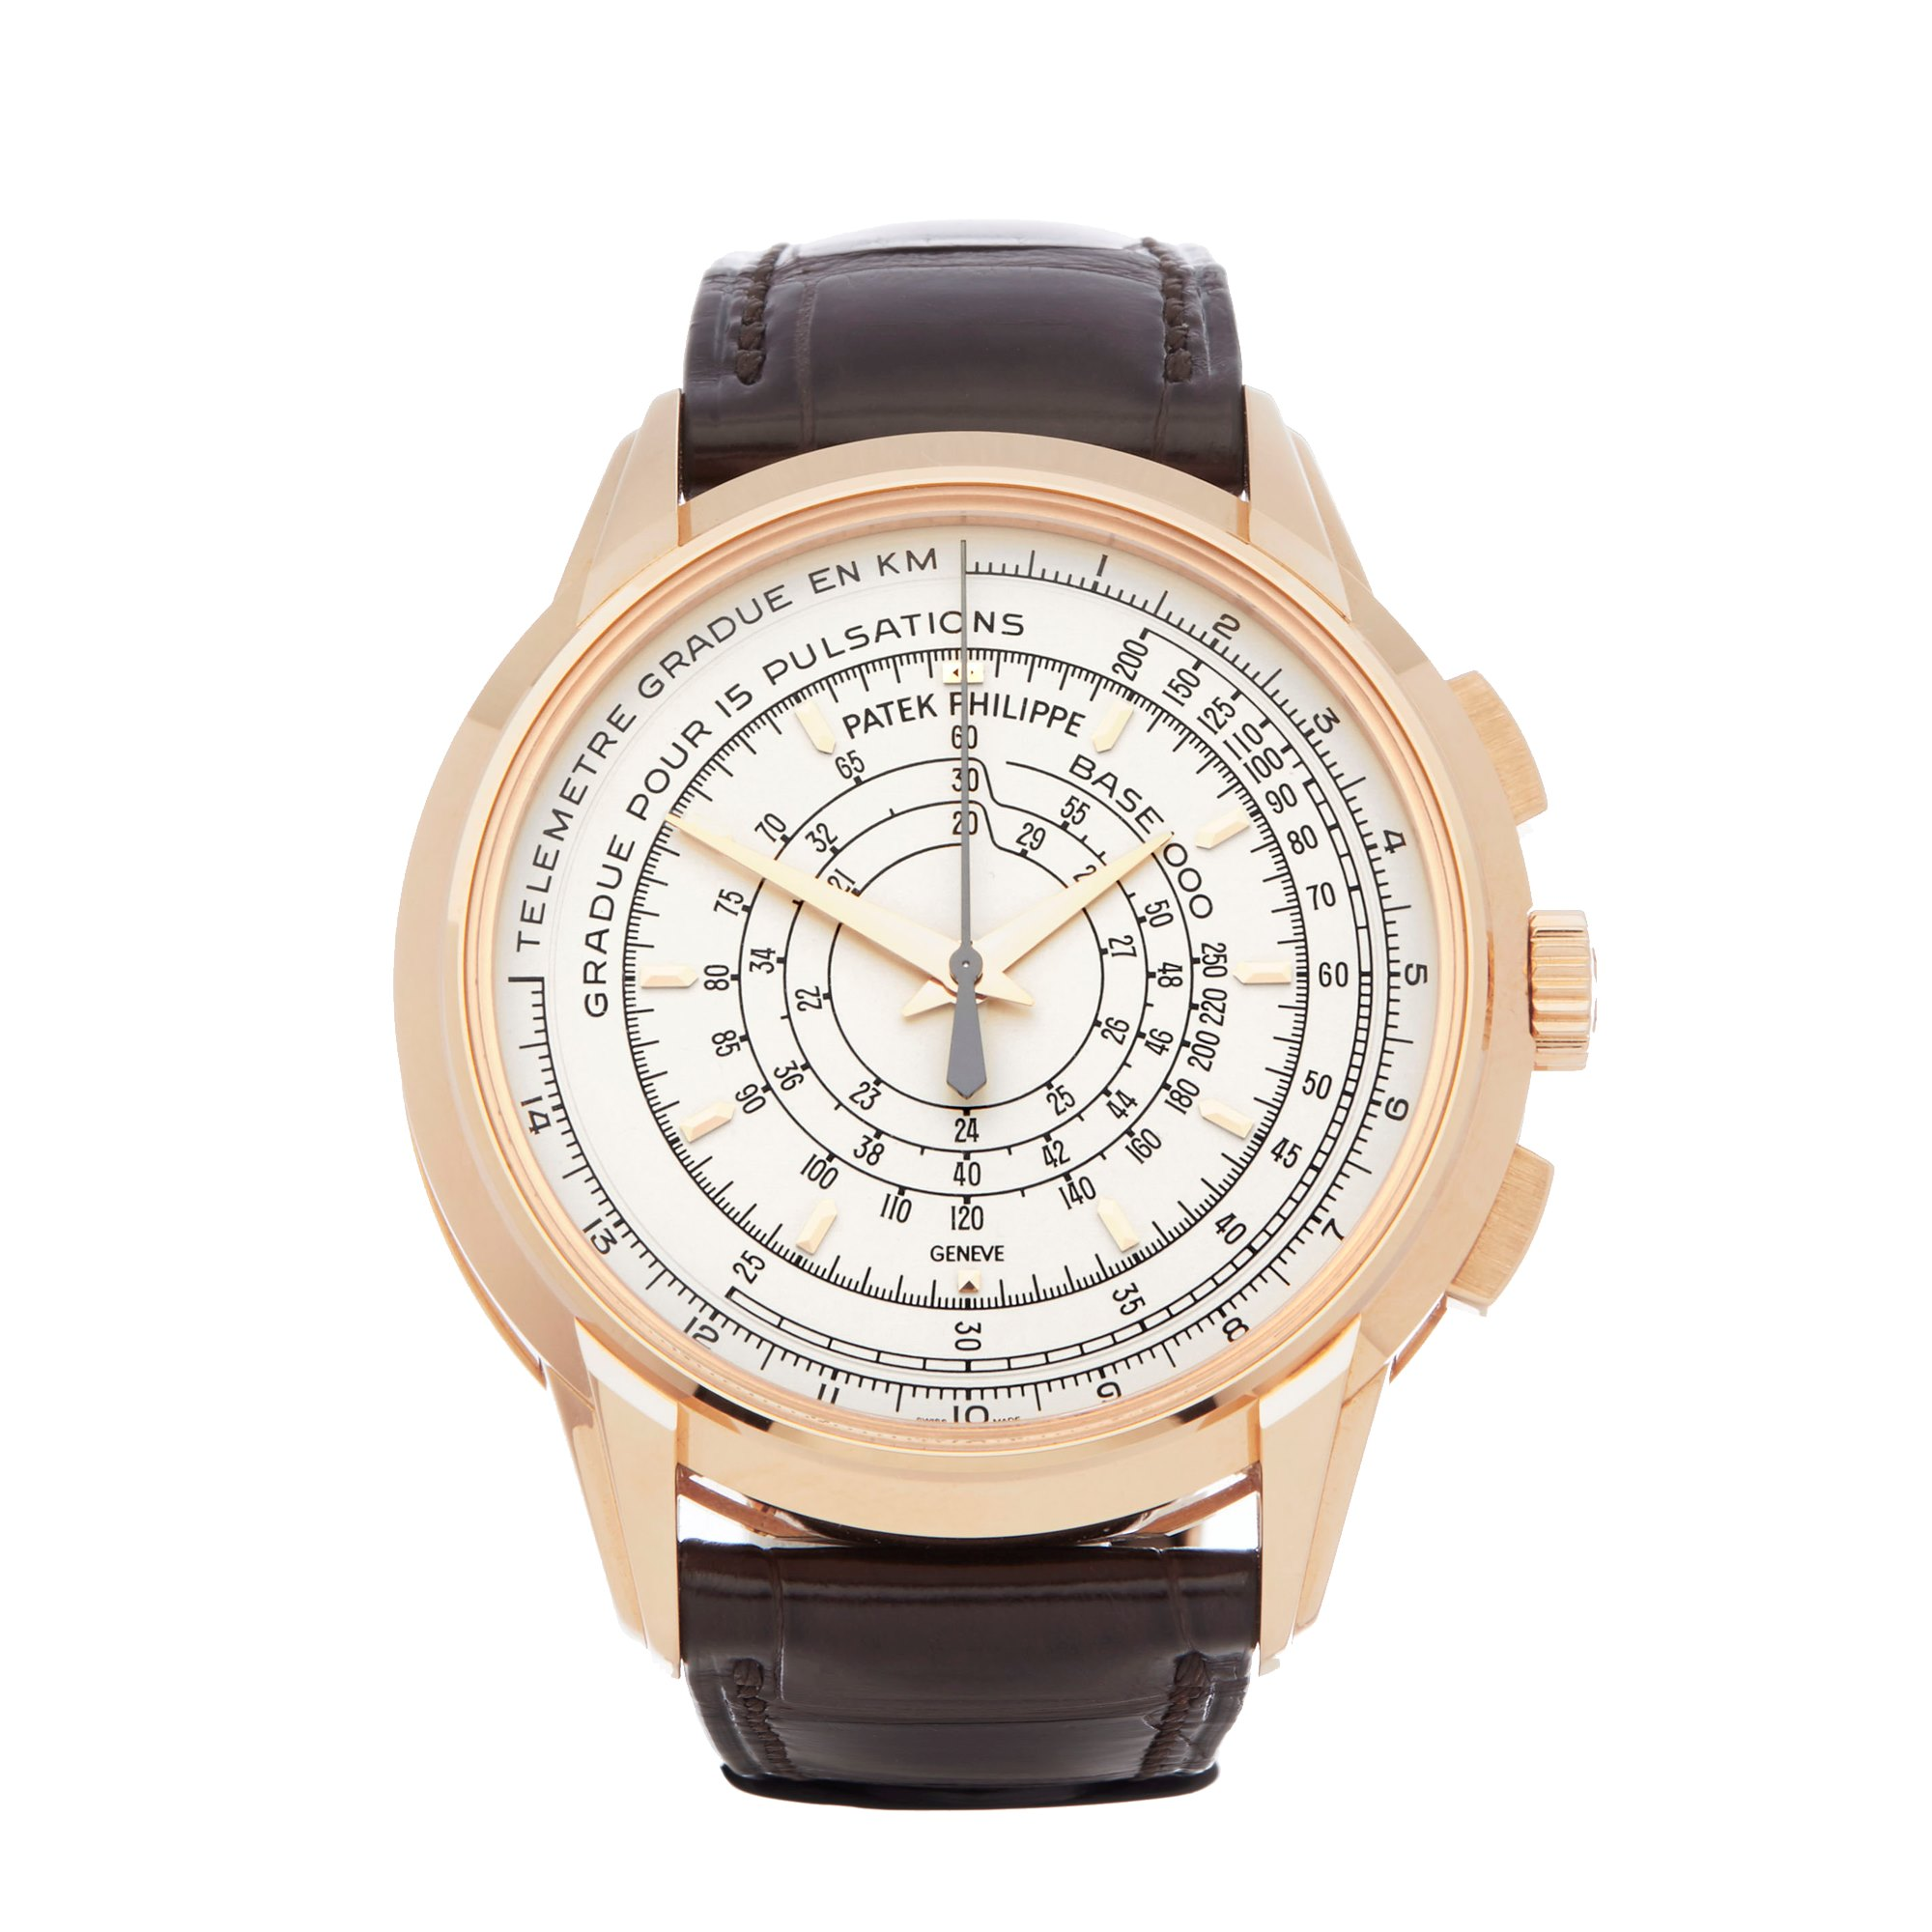 Eric Clapton Patek Philippe 5975R Chronograph 175th Anniversary For Sale